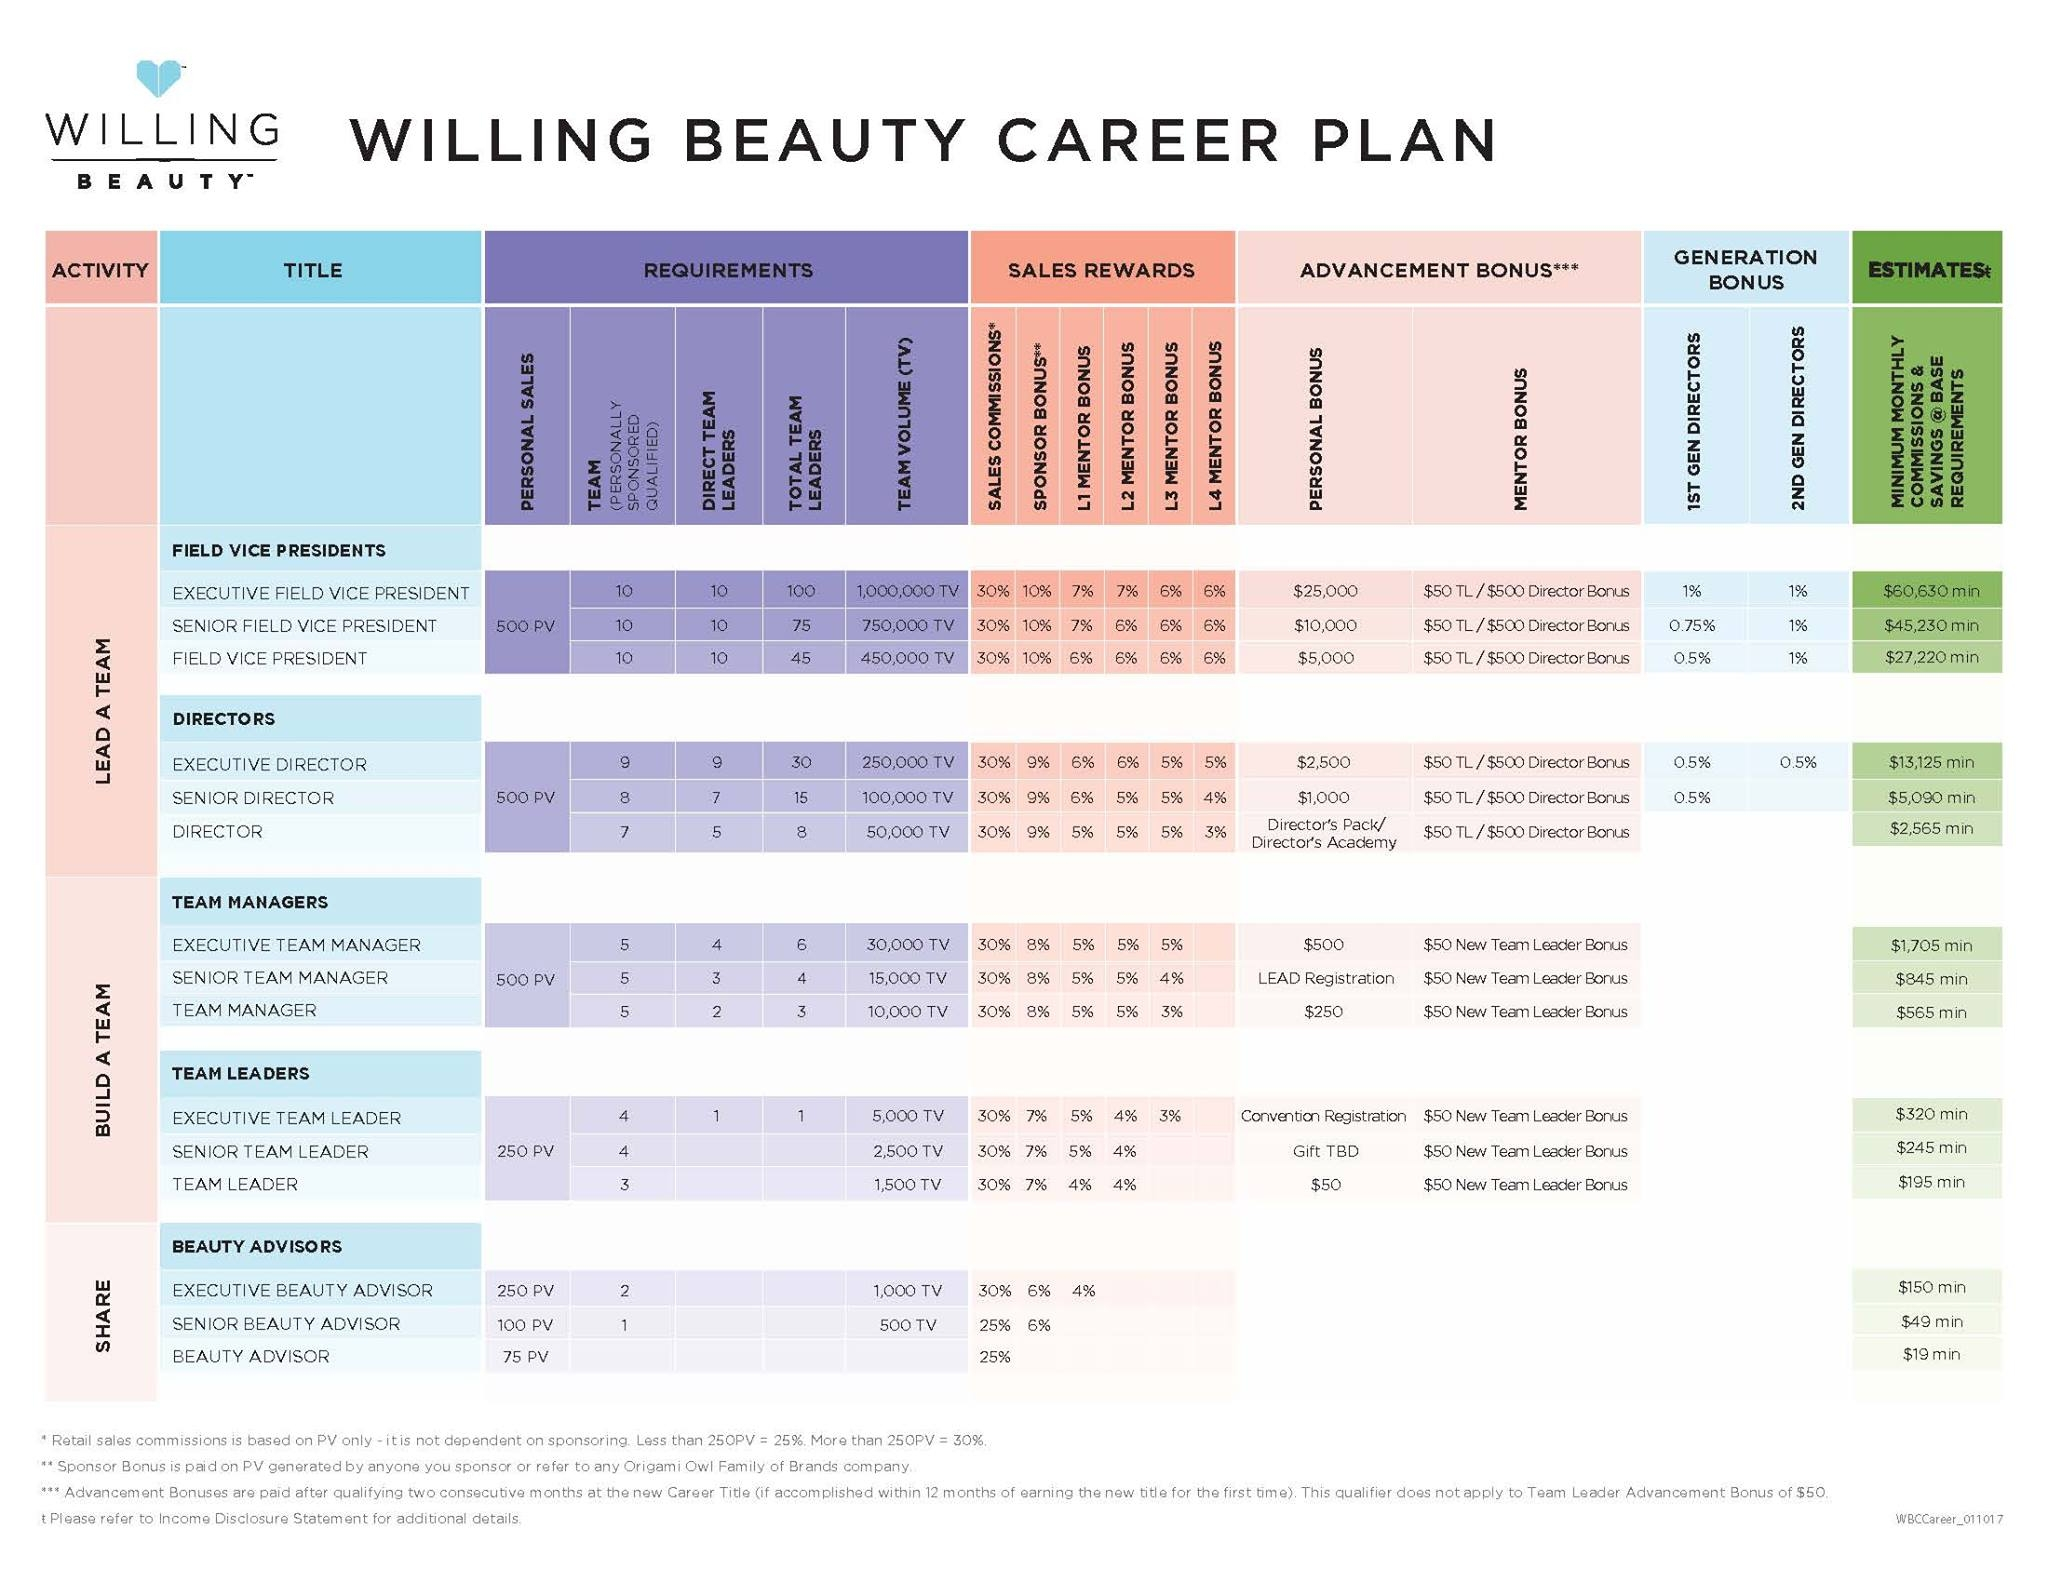 Willing Beauty Shop Online Cosmetics Makeup Skin Care